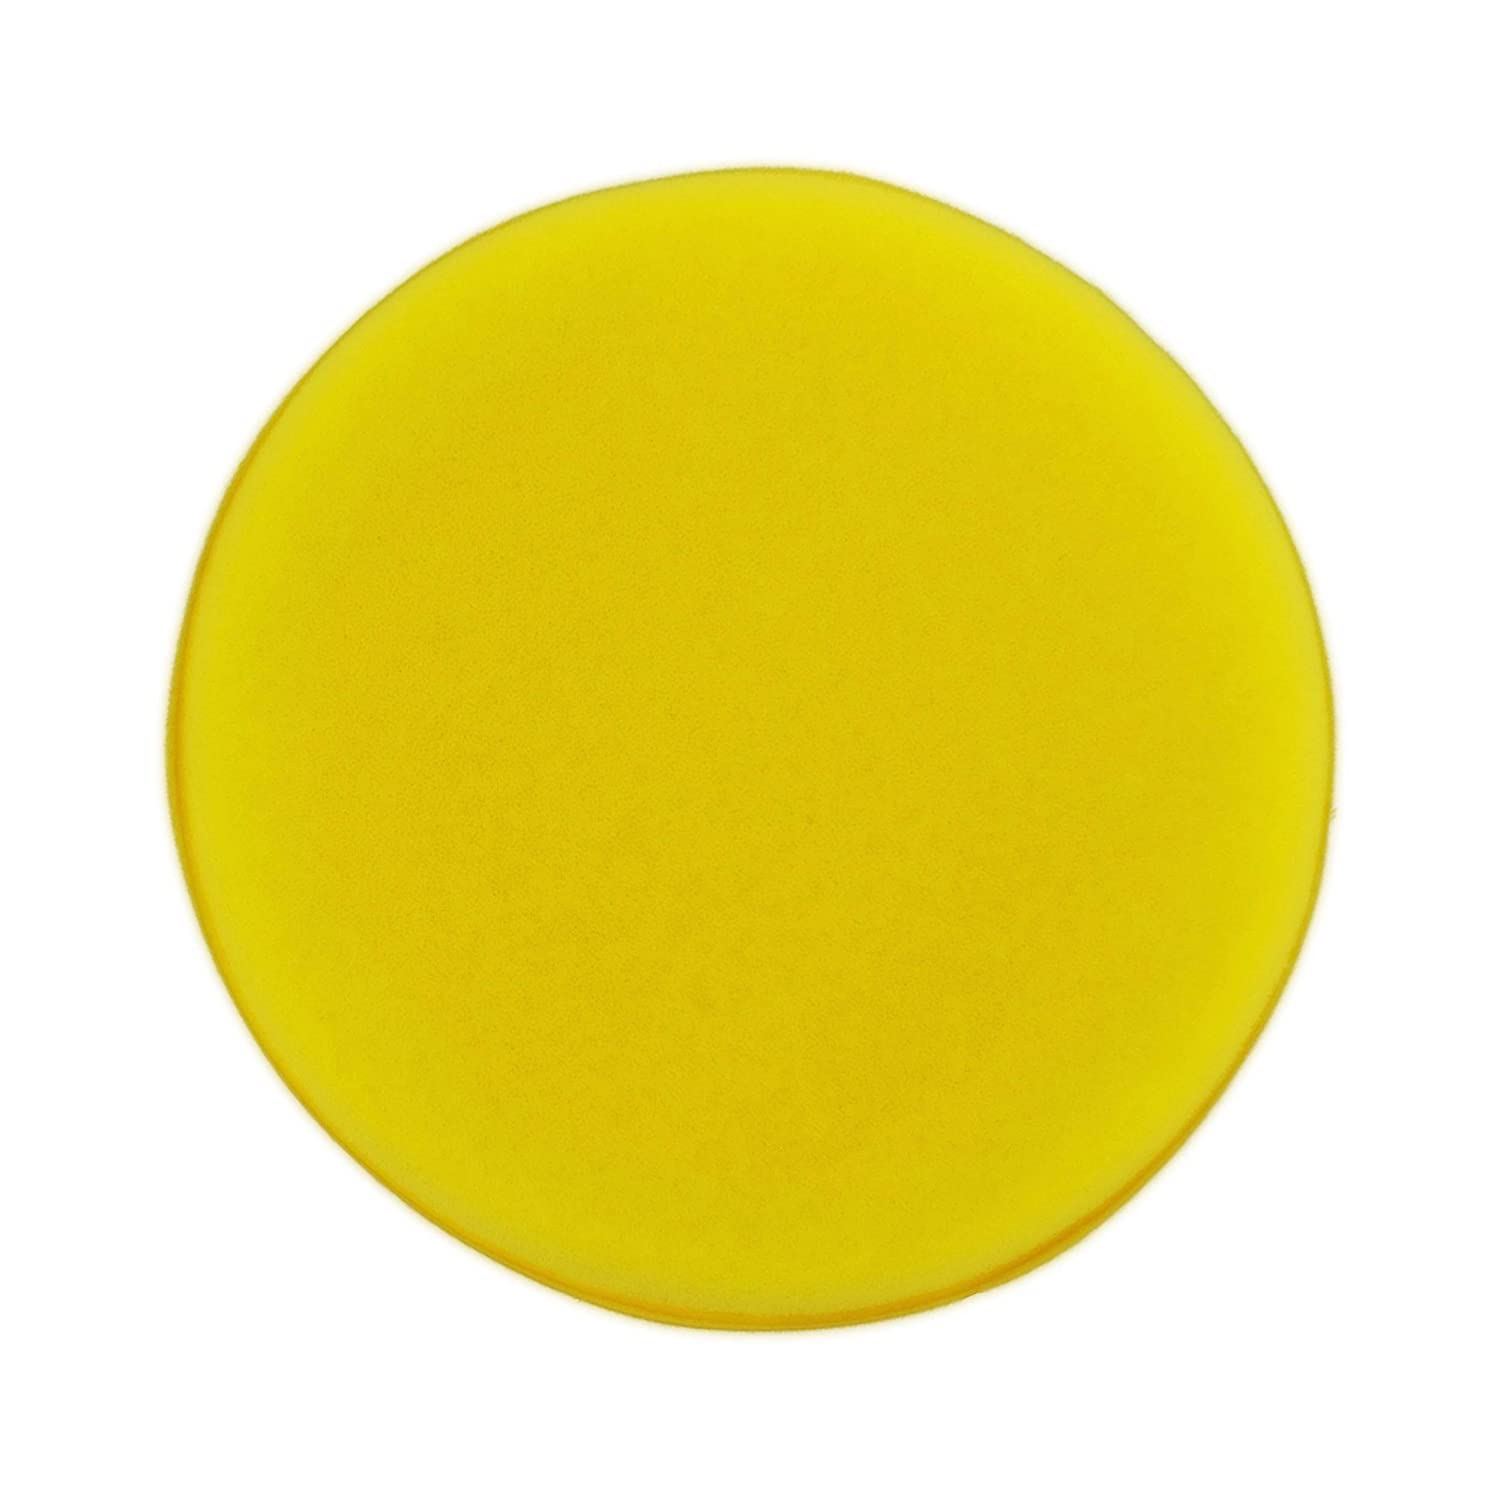 Polyte Foam Detailing Applicator Pad Yellow, 8 Pack, 4.3 in